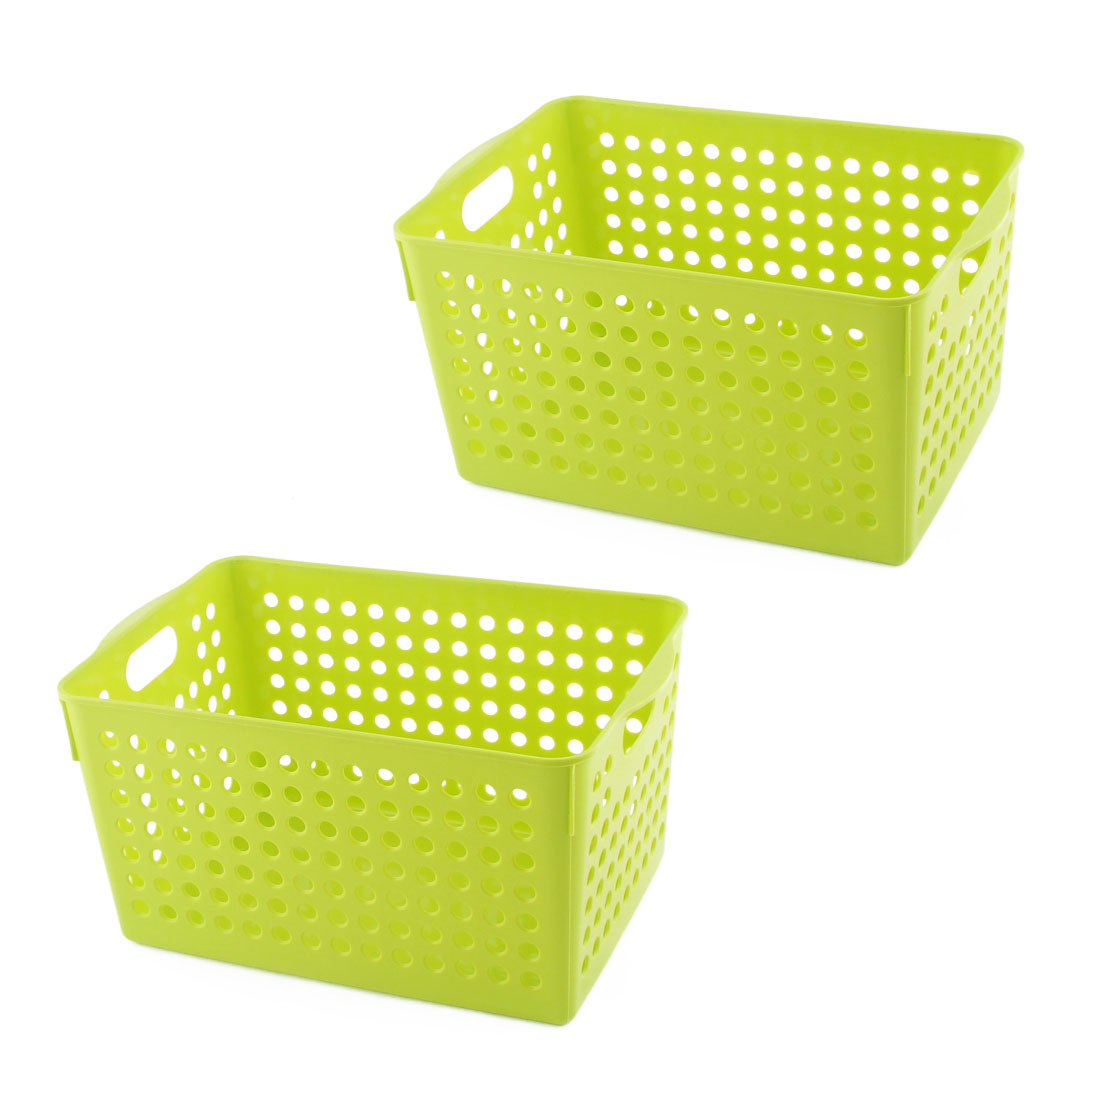 Bathroom Plastic Rectangular Shape Hollow Out Design Storage Organizer Basket Green 2pcs